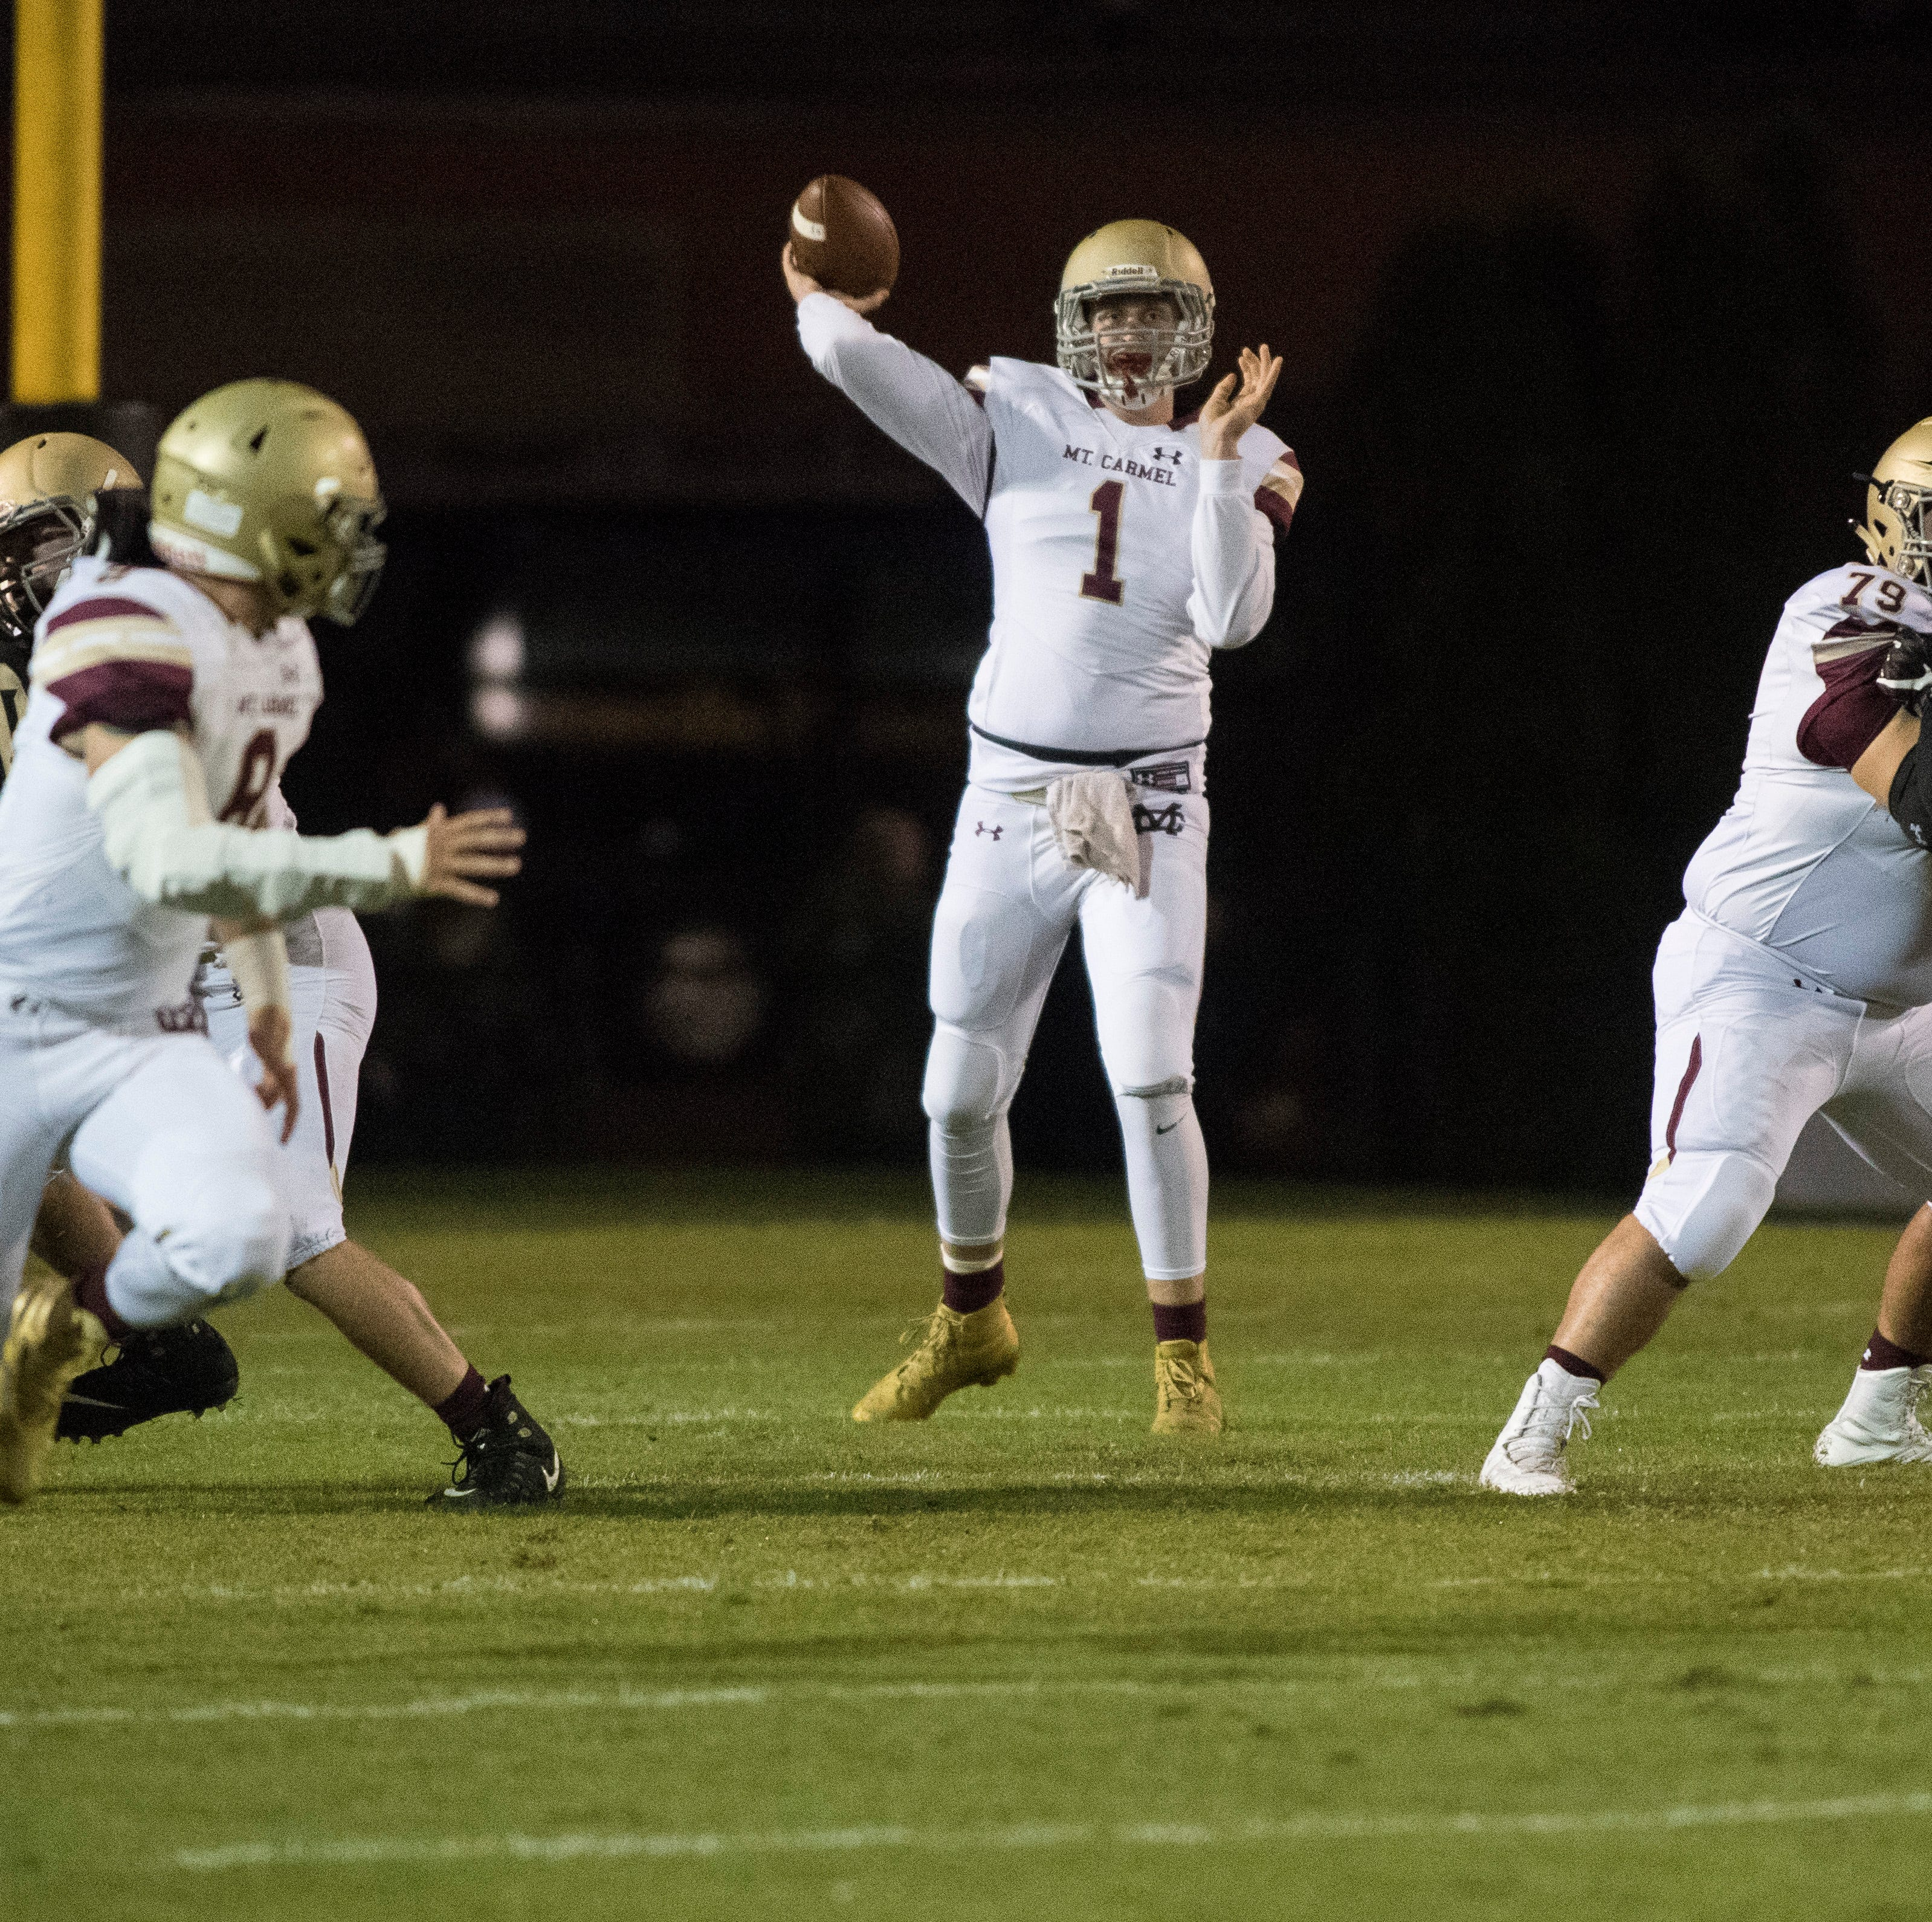 Mount Carmel announces it will leave Big Eight Conference after this school year